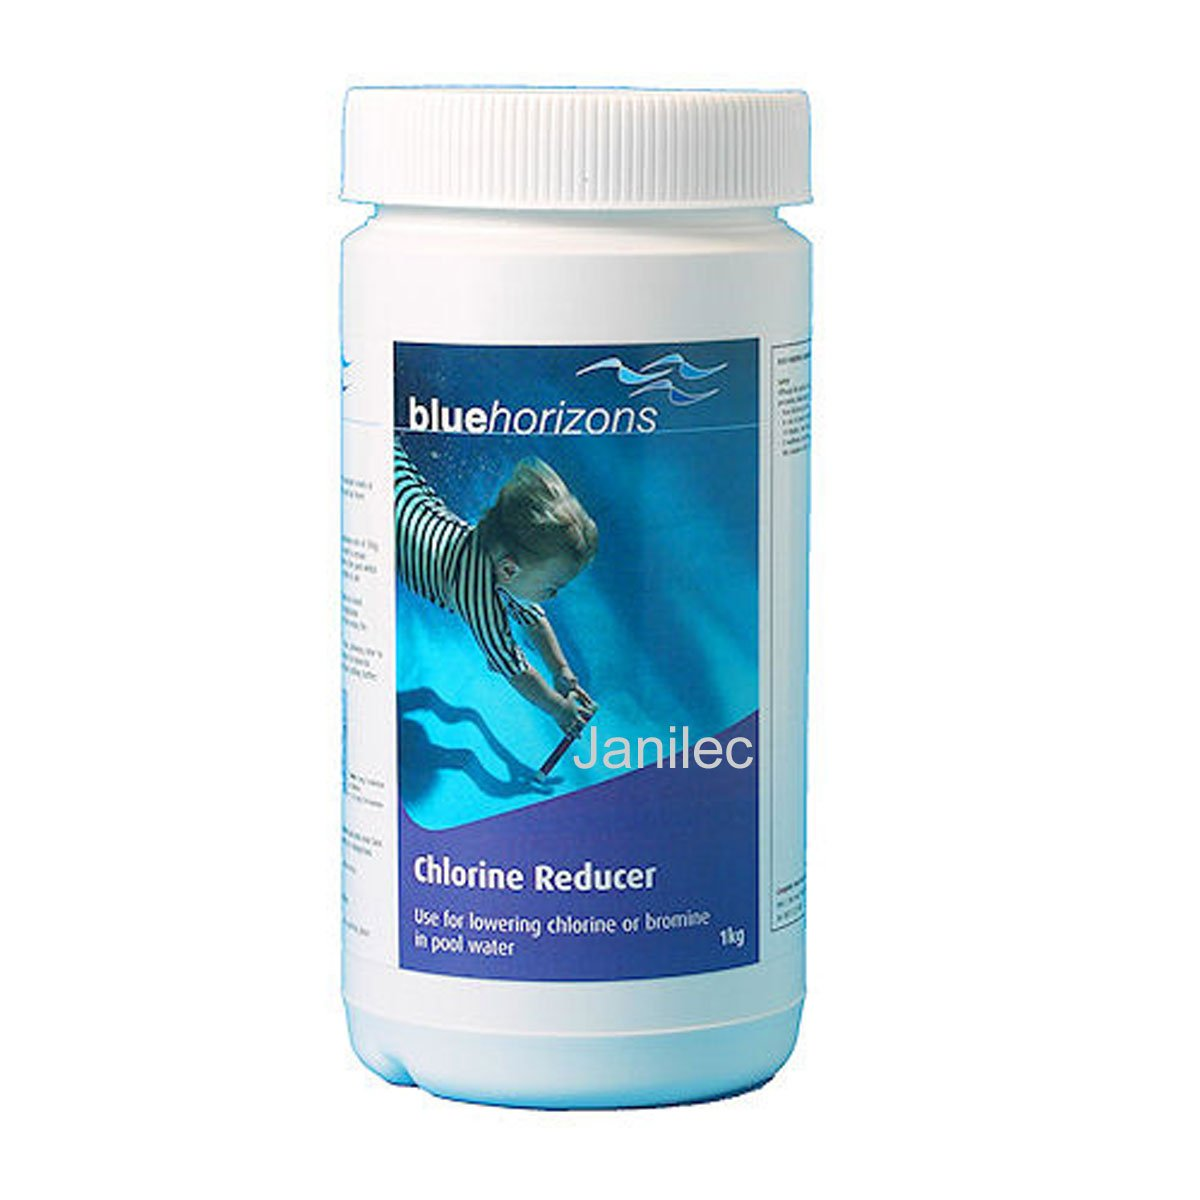 Blue Horizons Chlorine Reducer - Tub of 1Kg CPC